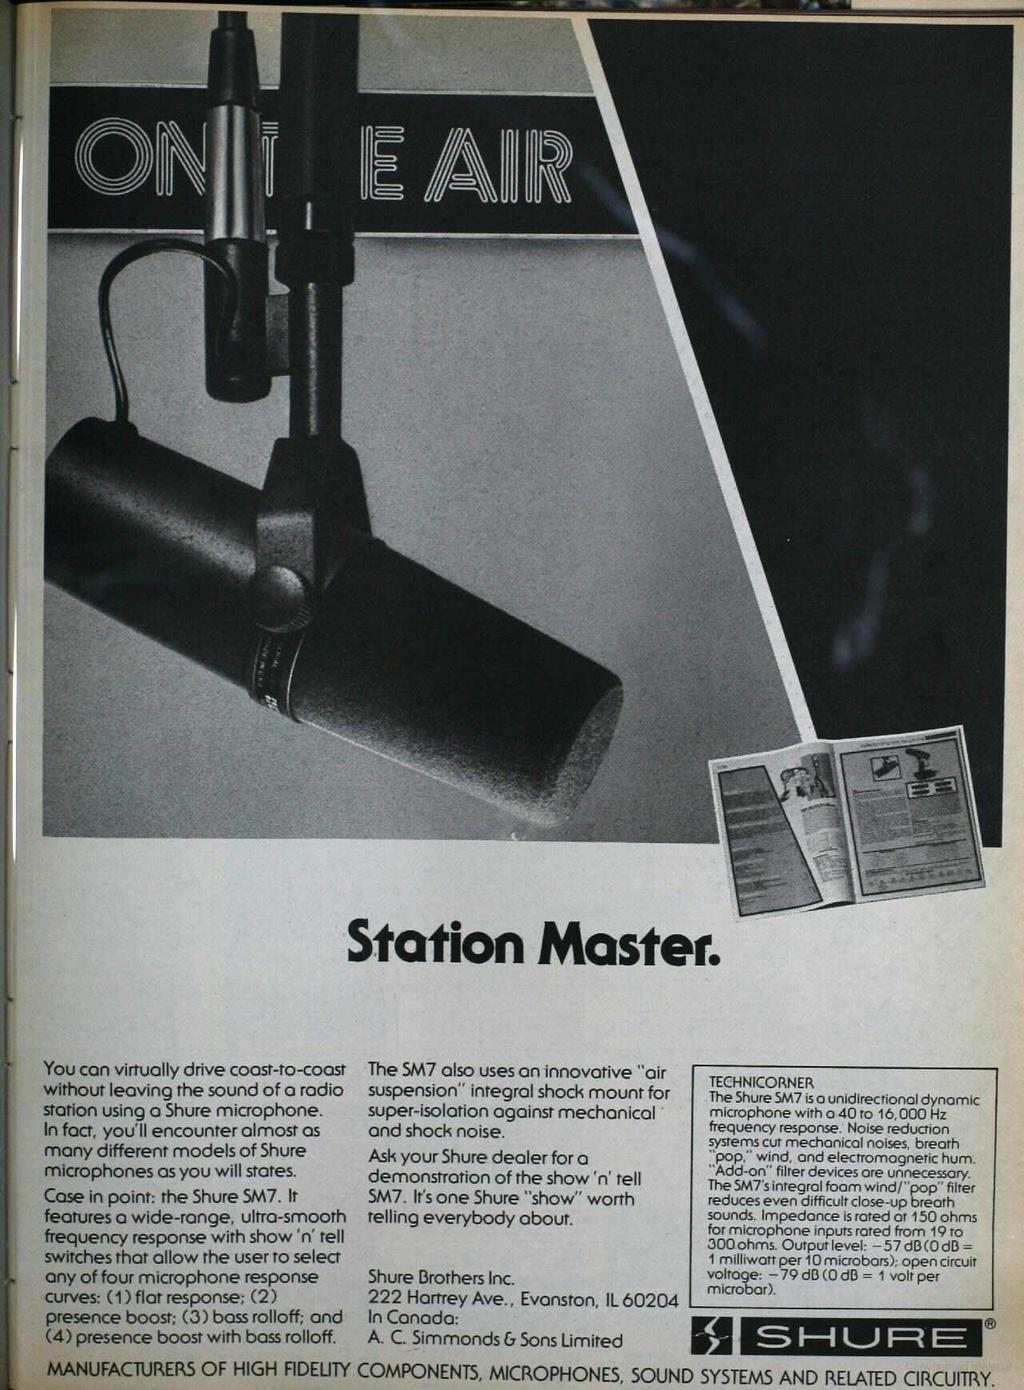 MANUFACTURERS OF HIGH FIDELITY COMPONENTS, MICROPHONES, SOUND SYSTEMS AND RELATED CIRCUITRY. www.americanradiohistory.com Station Master.